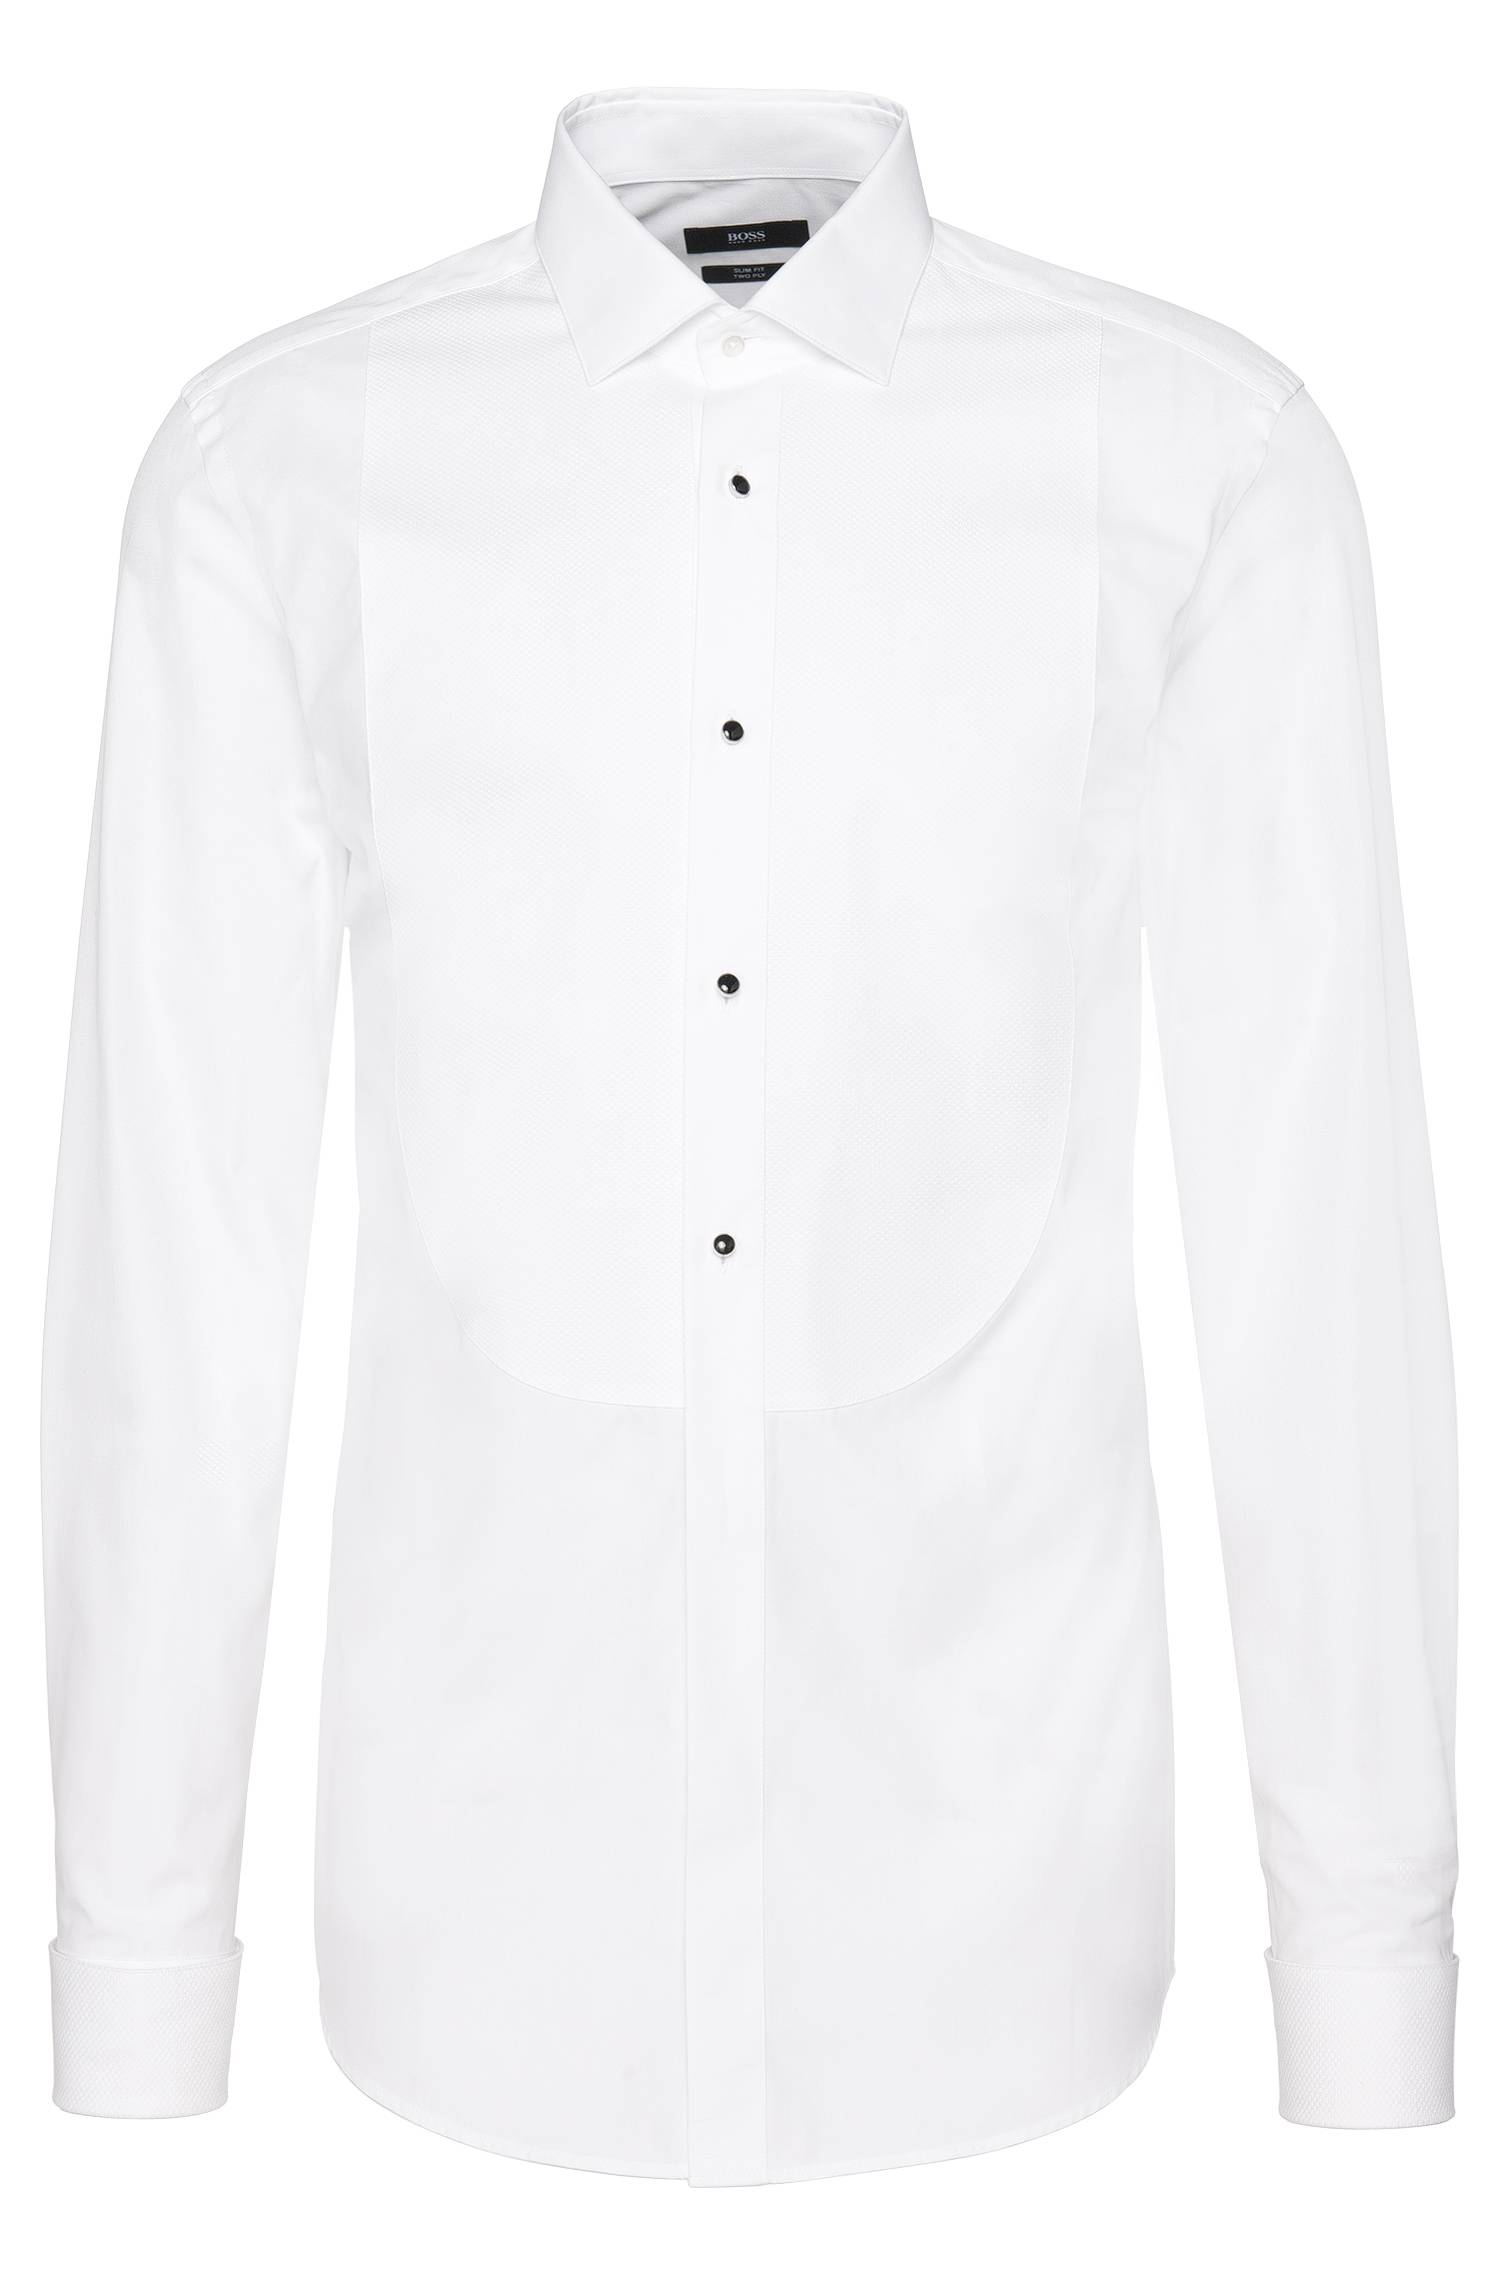 Slimfit shirt in twoply cotton with textured Ascot tie insert `Jant`